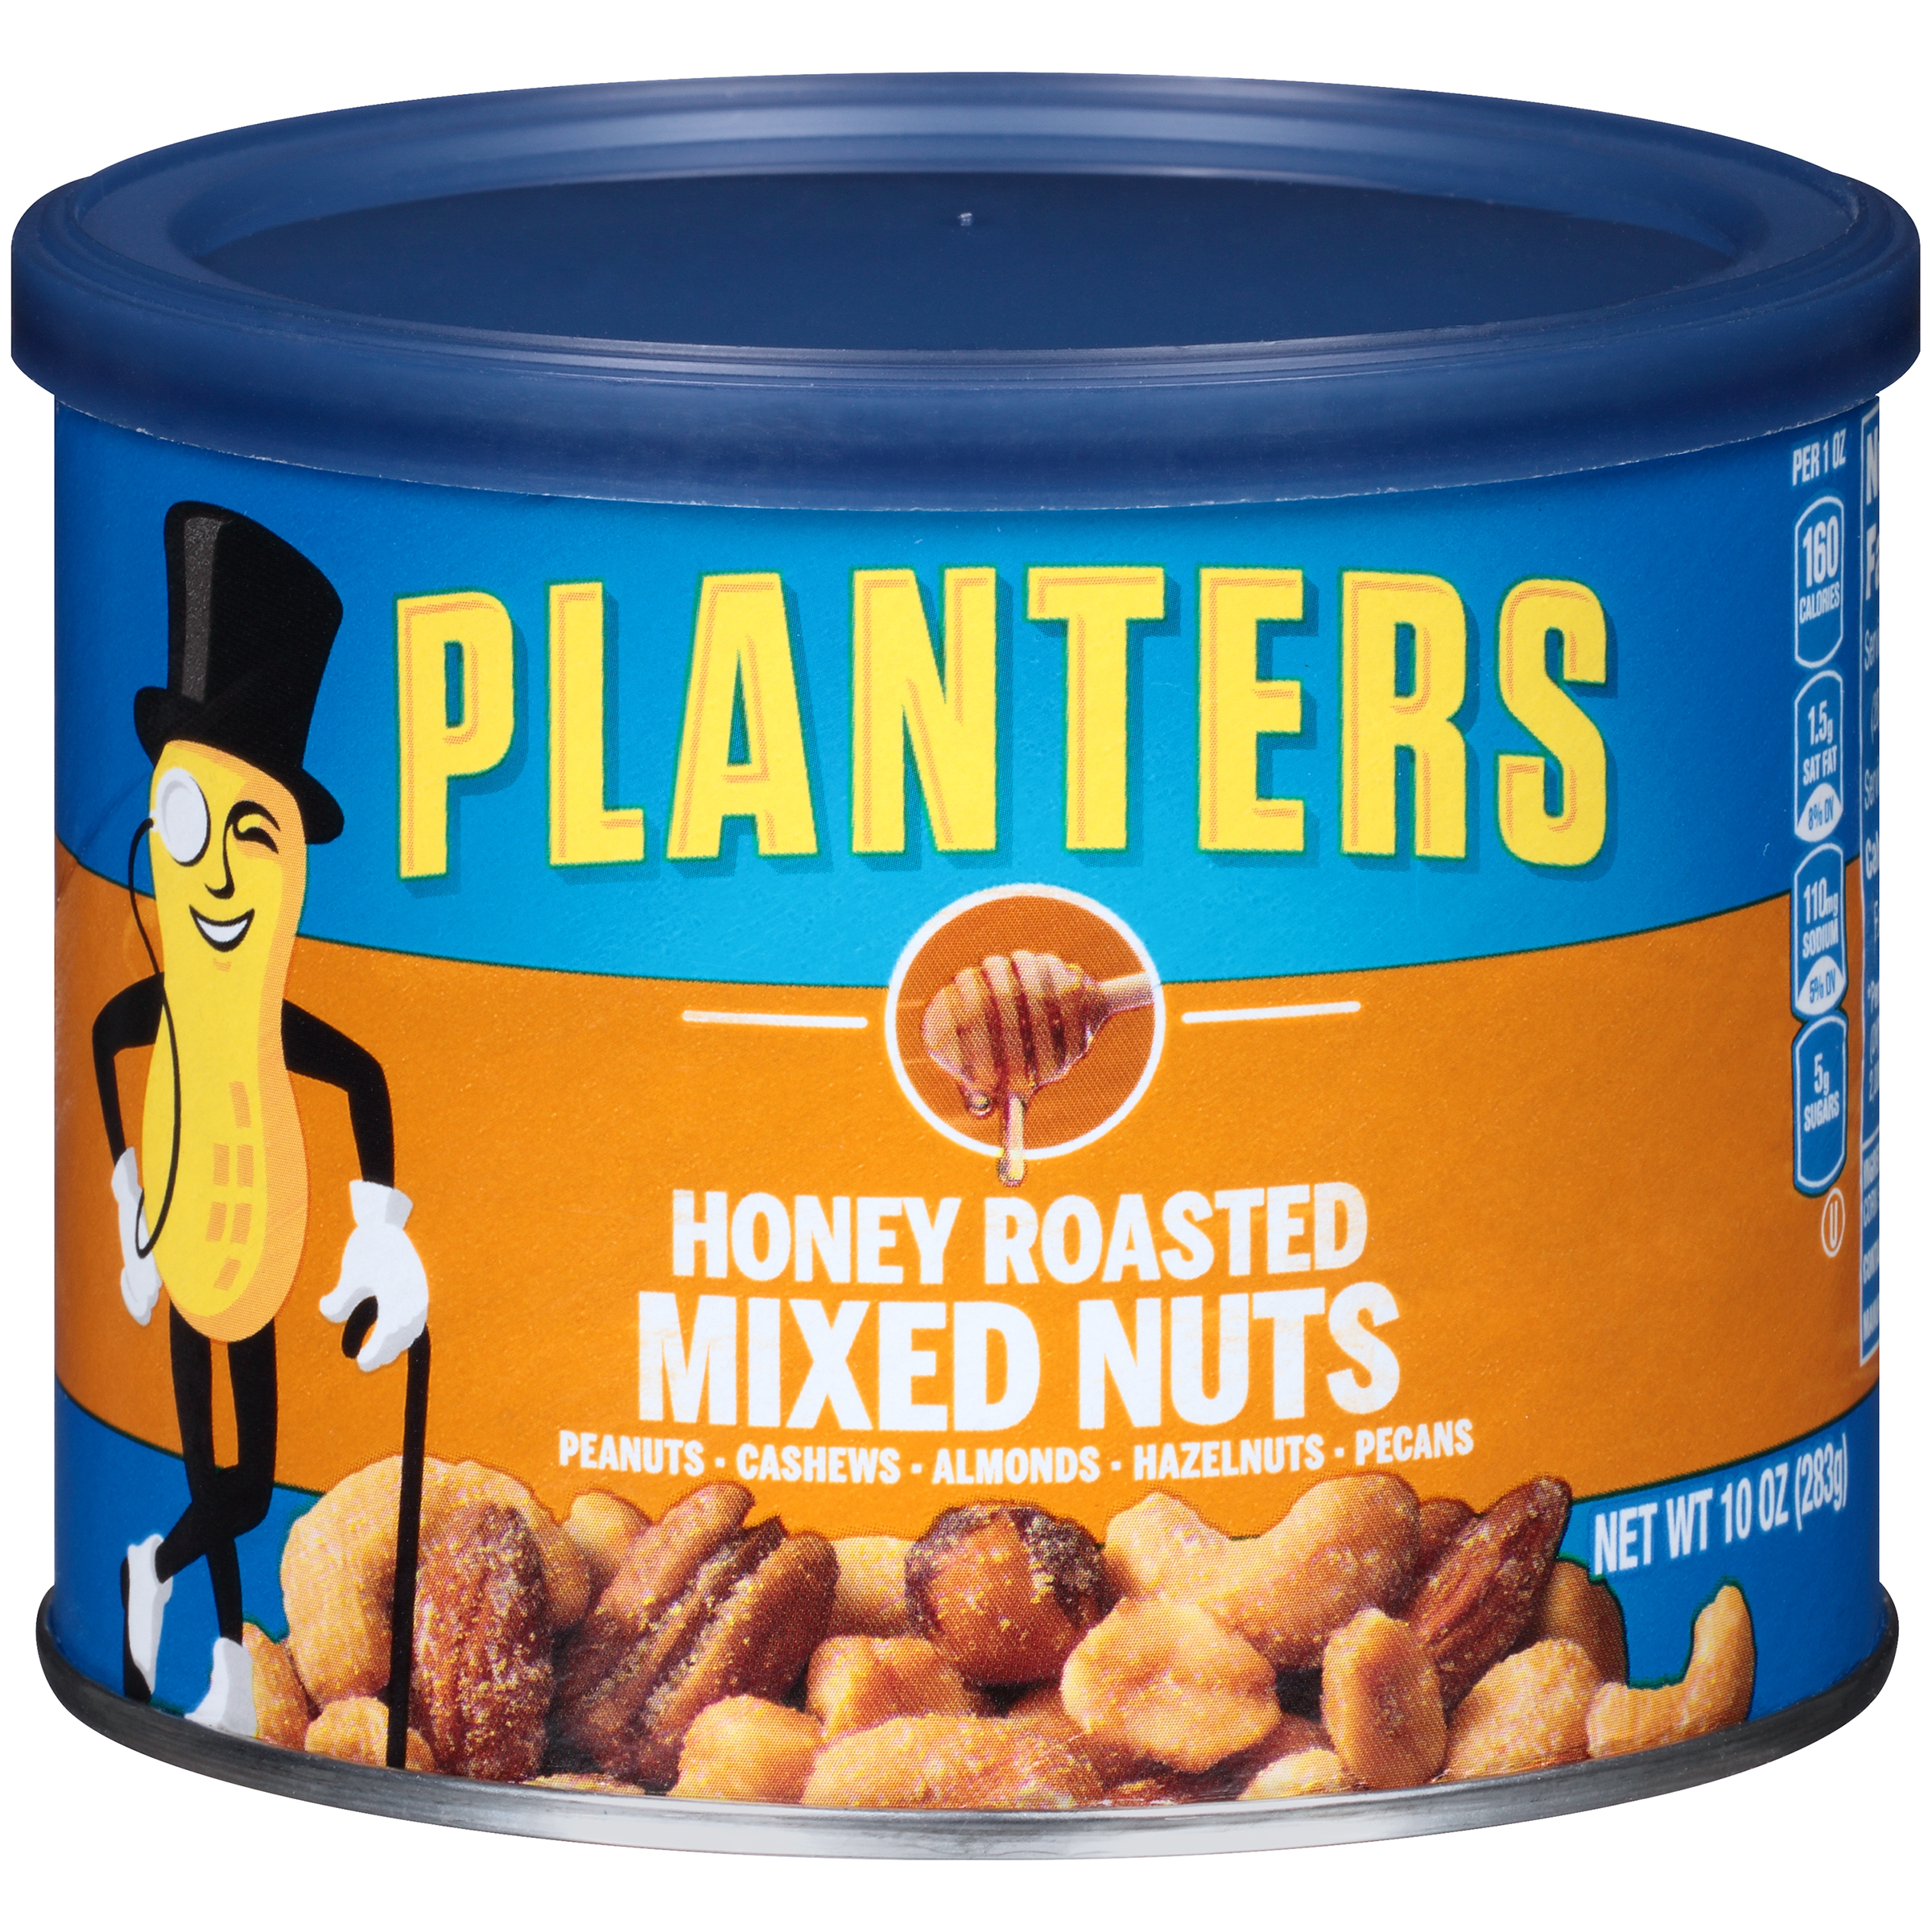 Planters Honey Roasted Mixed Nuts